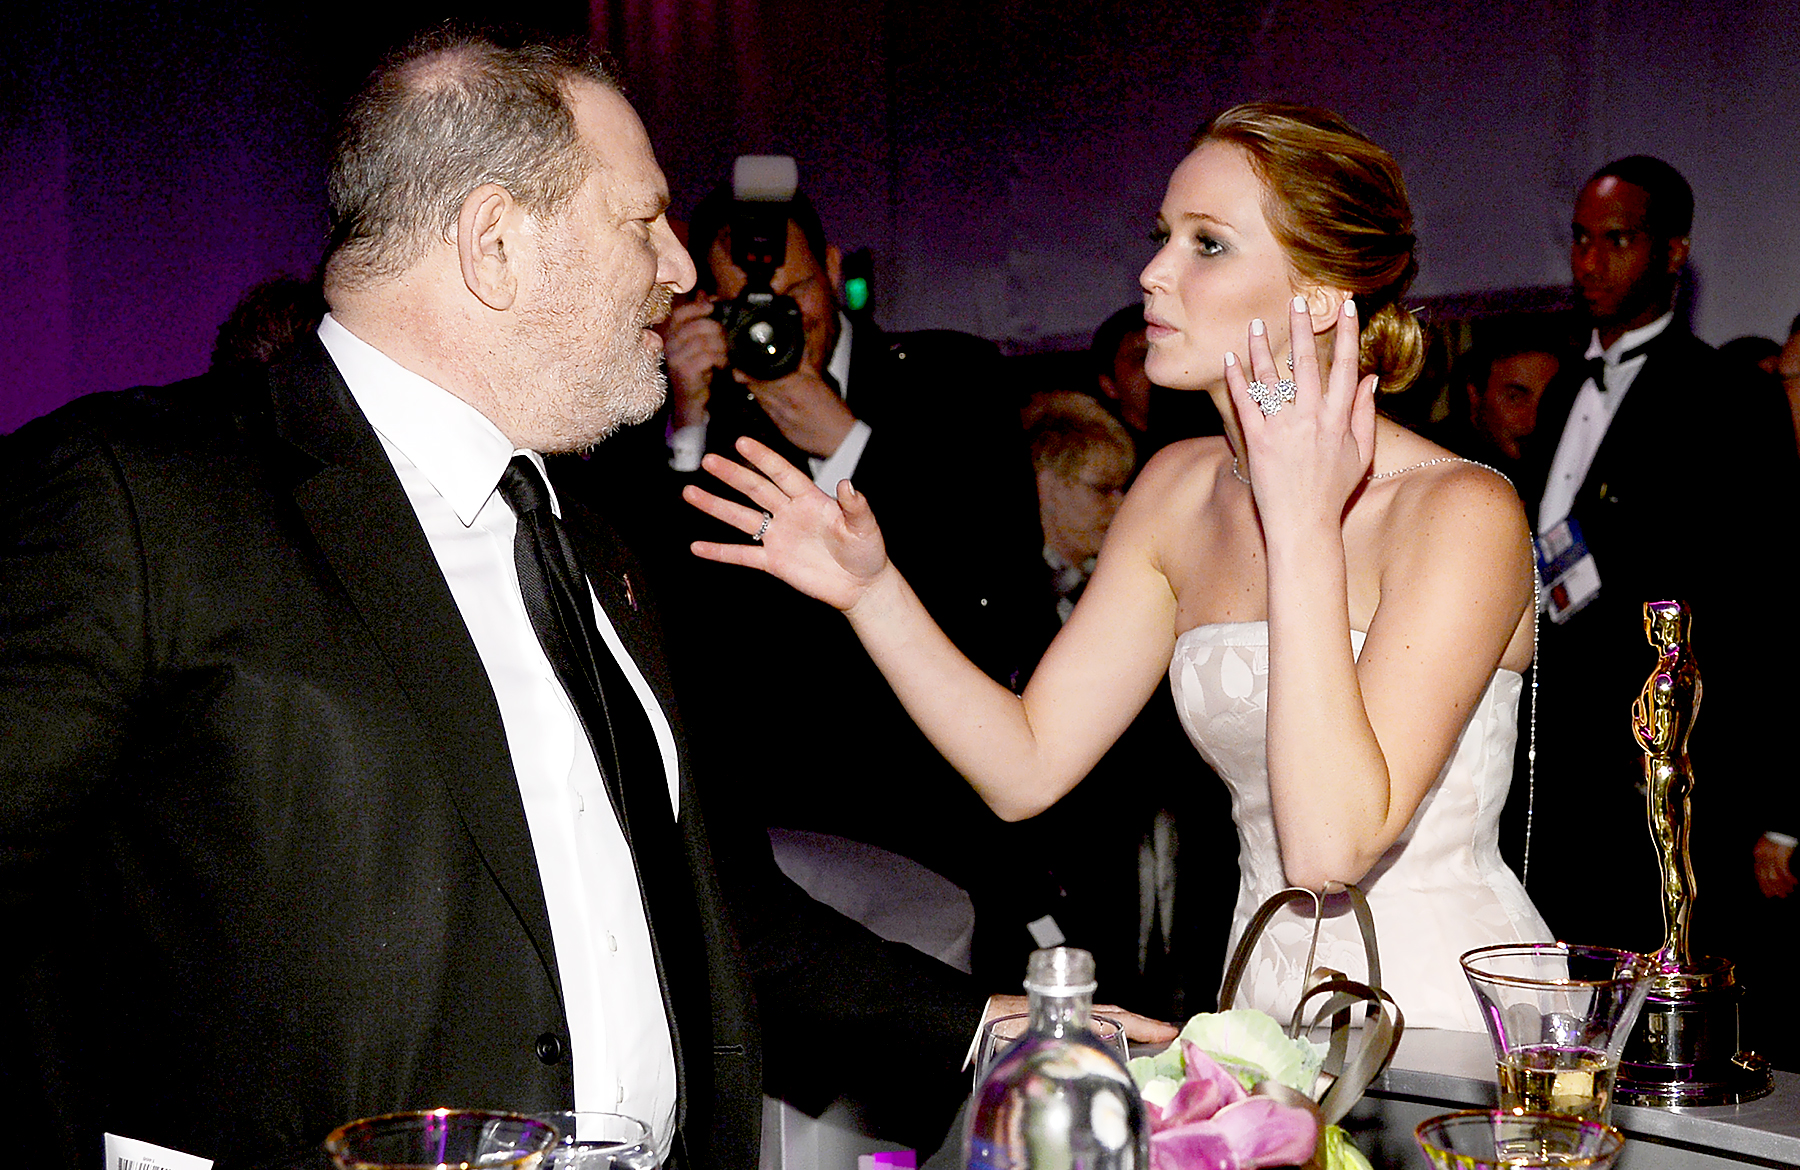 Harvey Weinstein a letto con Jennifer Lawrence? La risposta dell'attrice